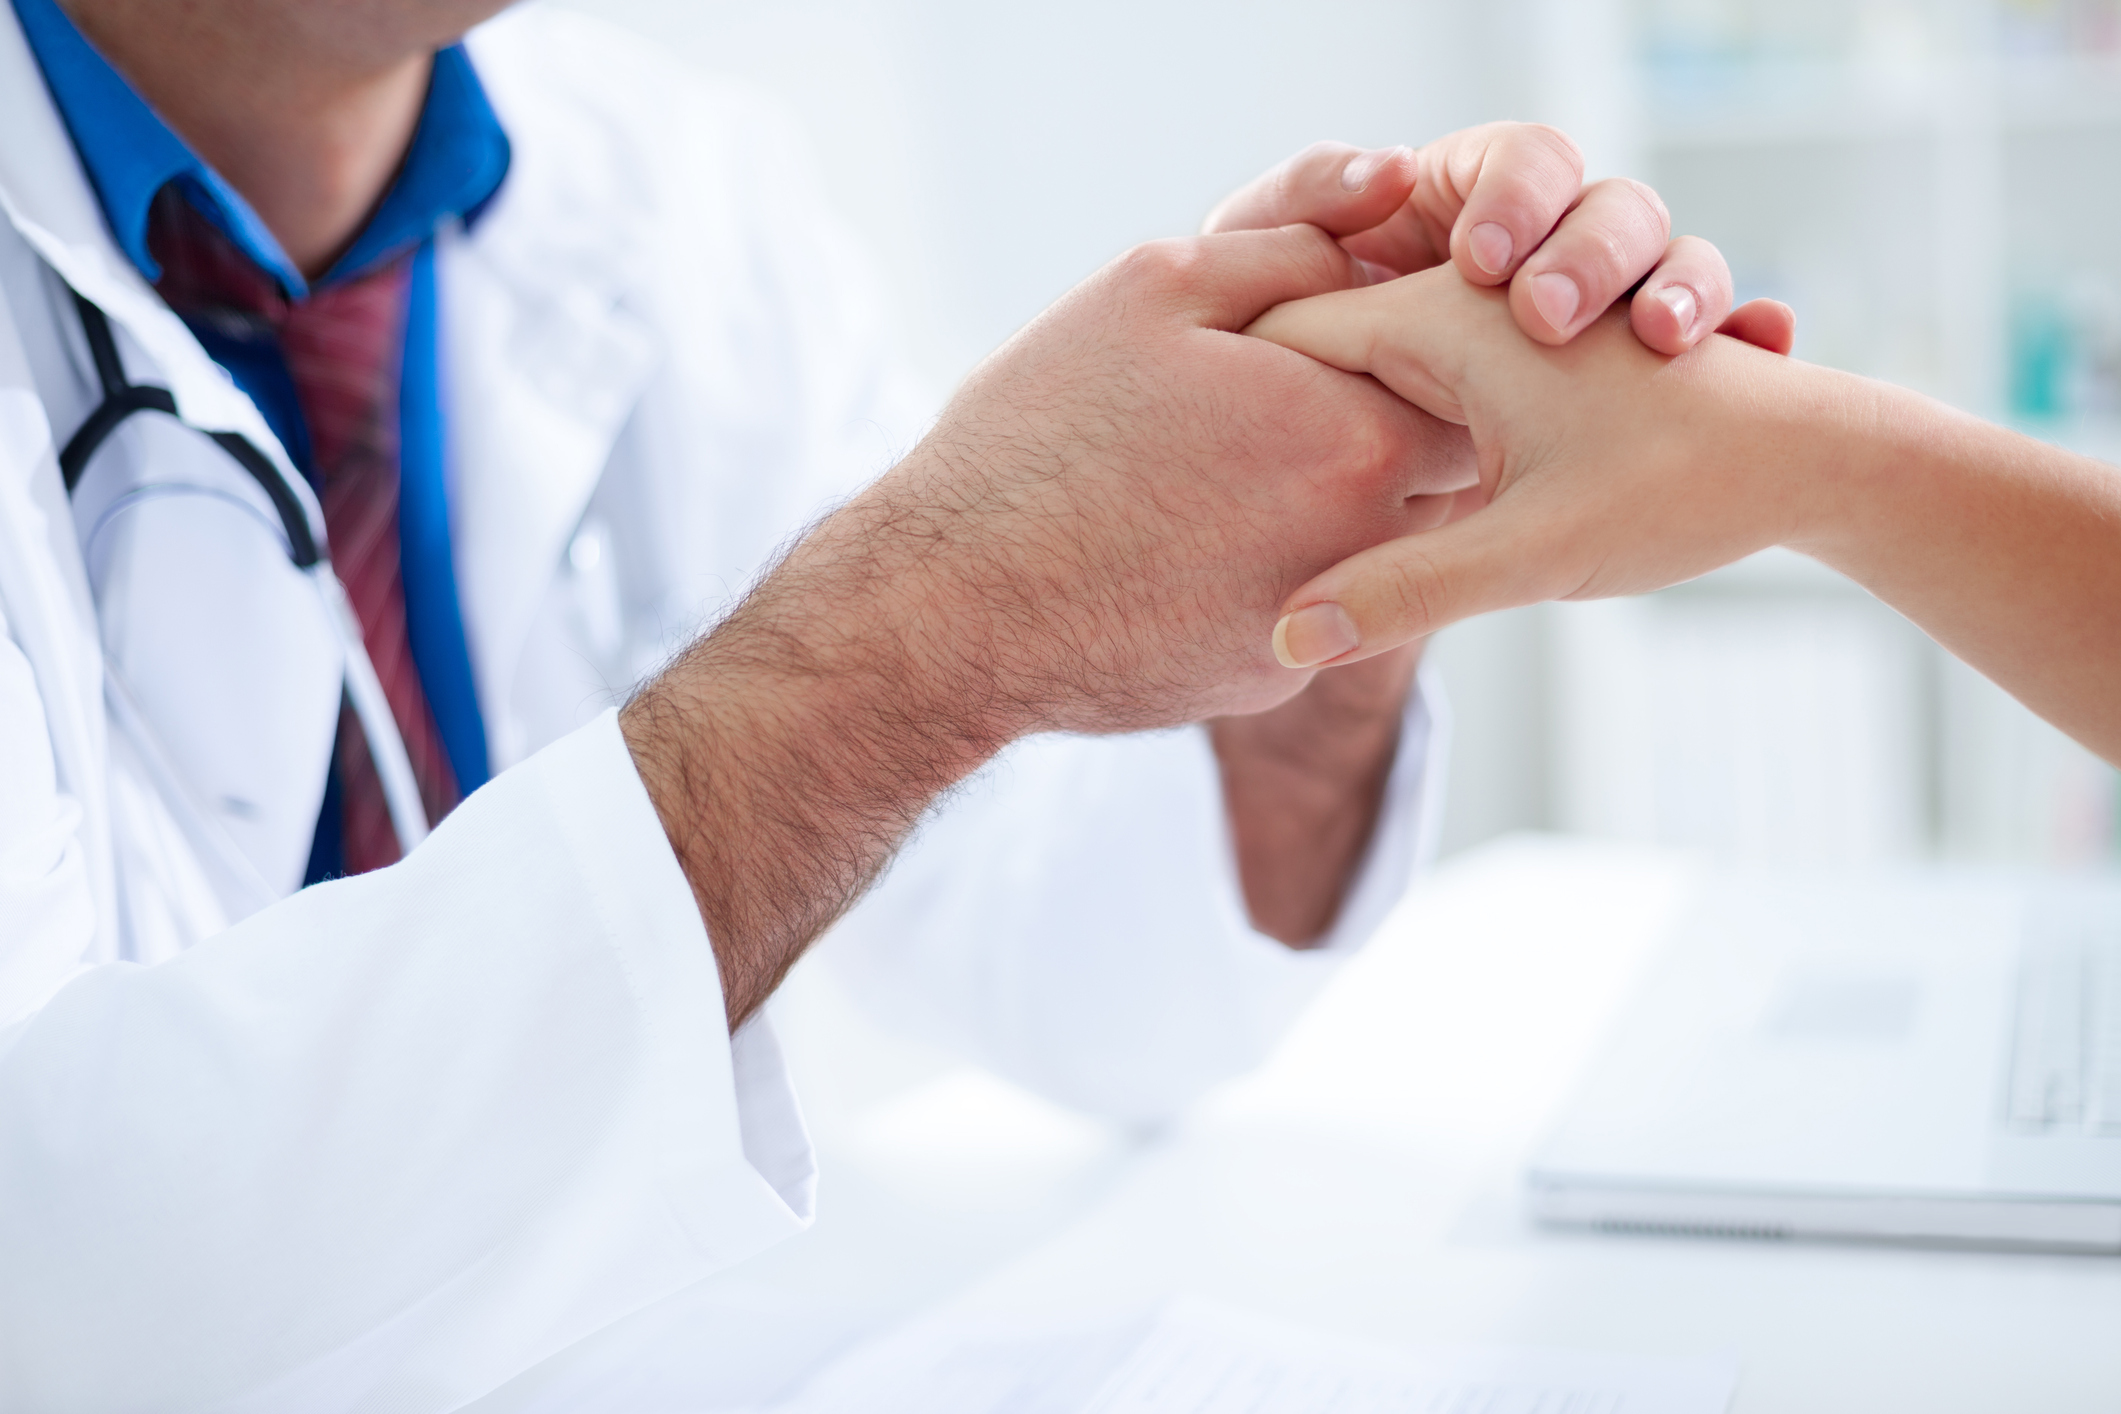 Do you take this doctor to be your primary care physician, in sickness and in health?